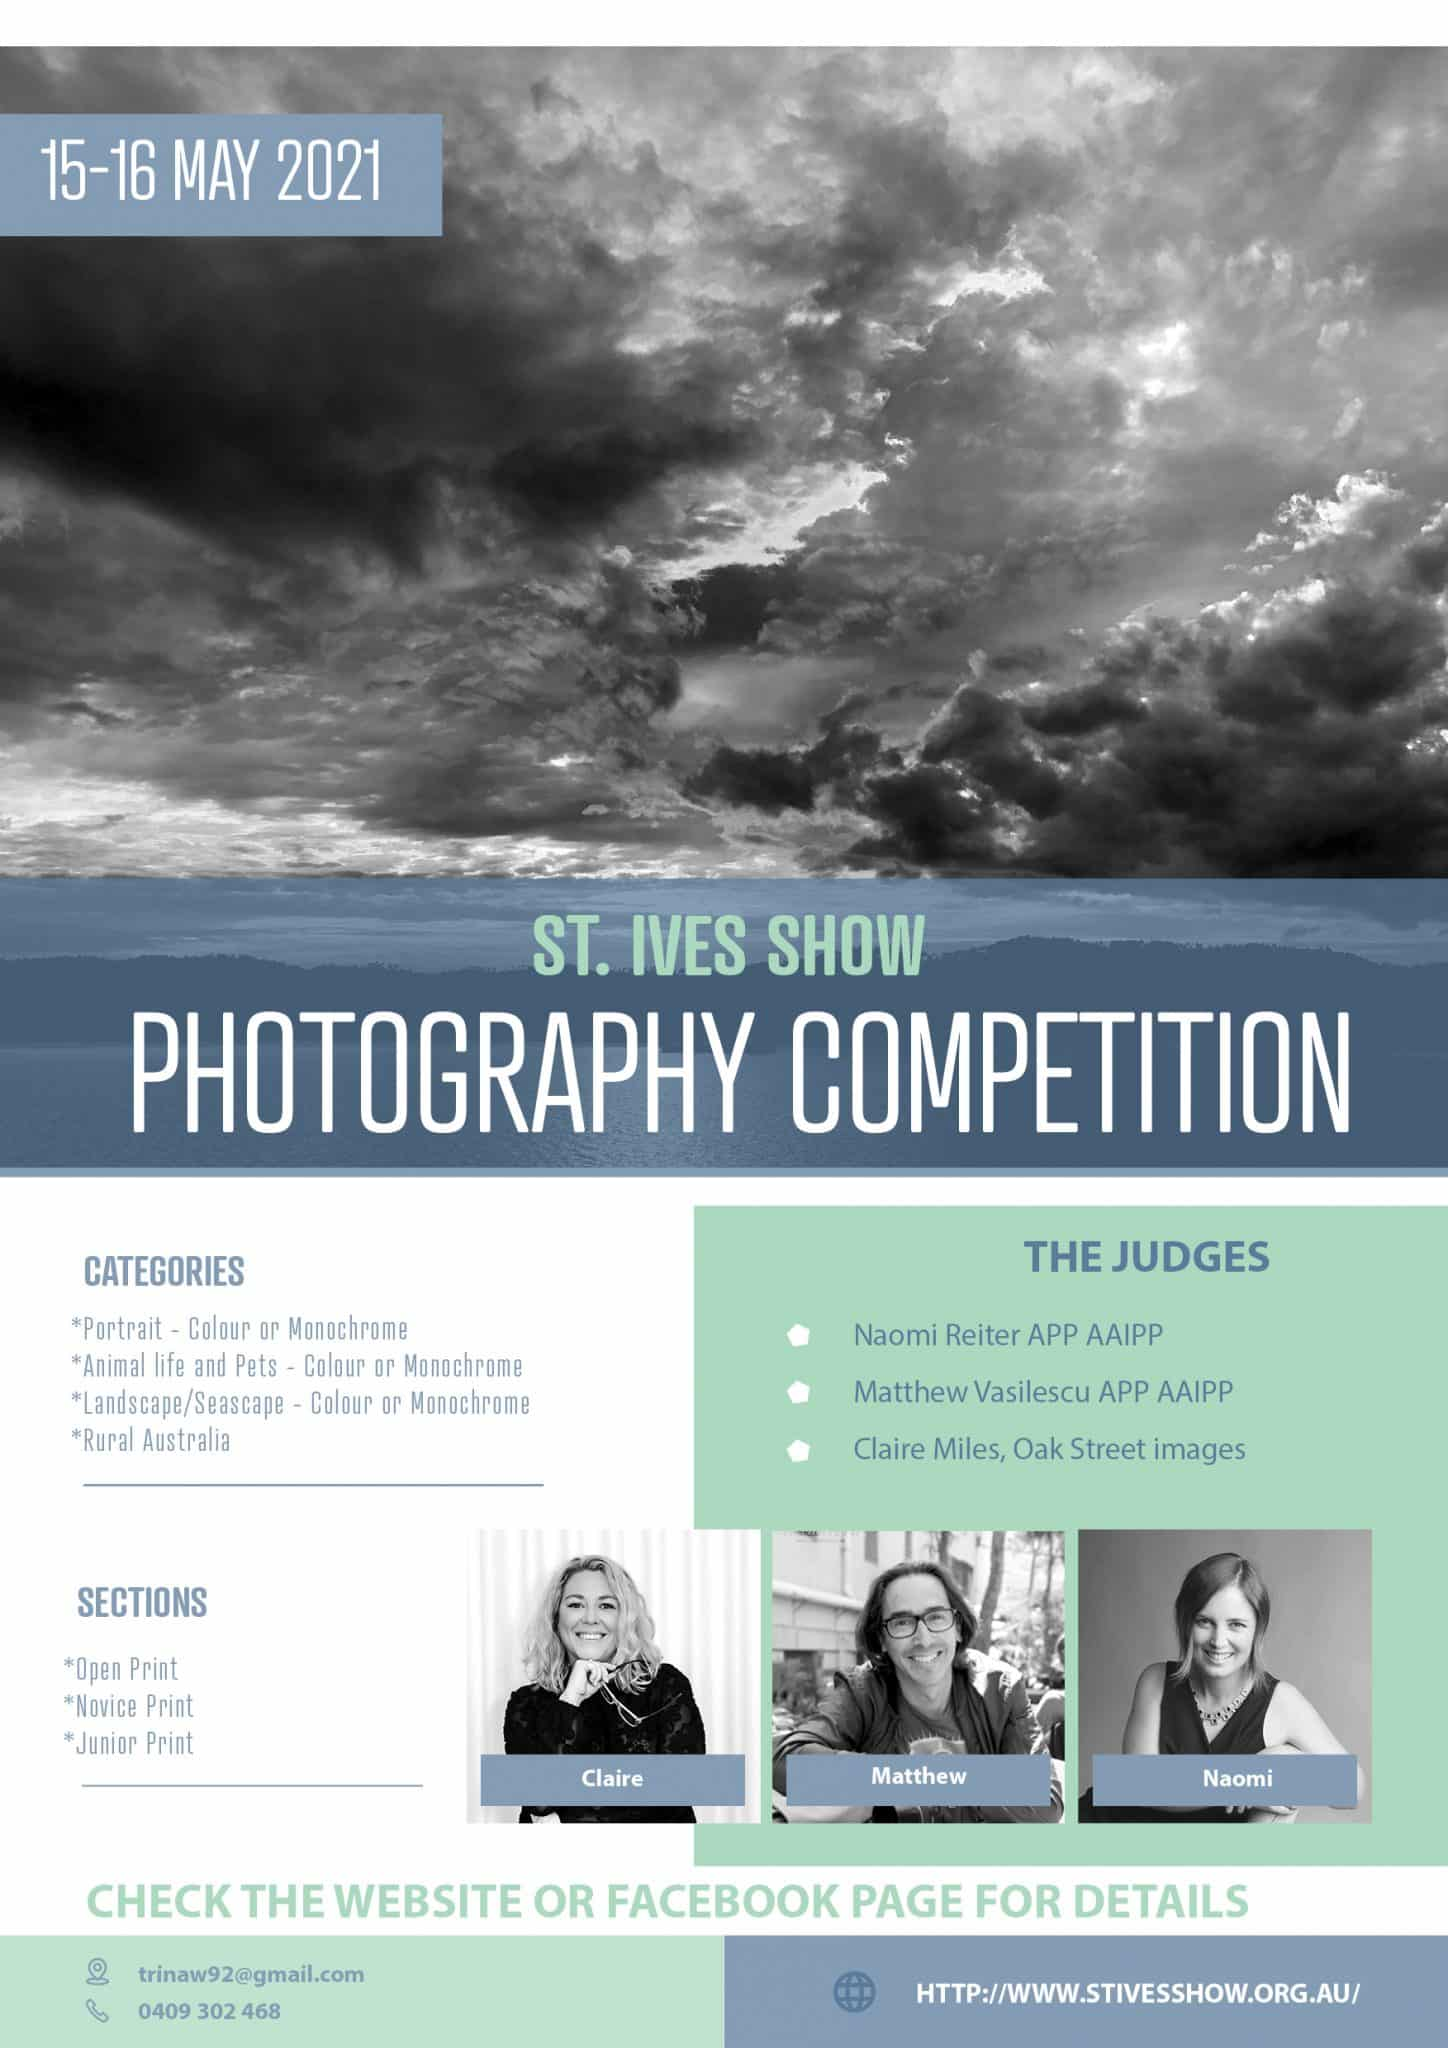 Poster info for the photography competition at St Ives Show